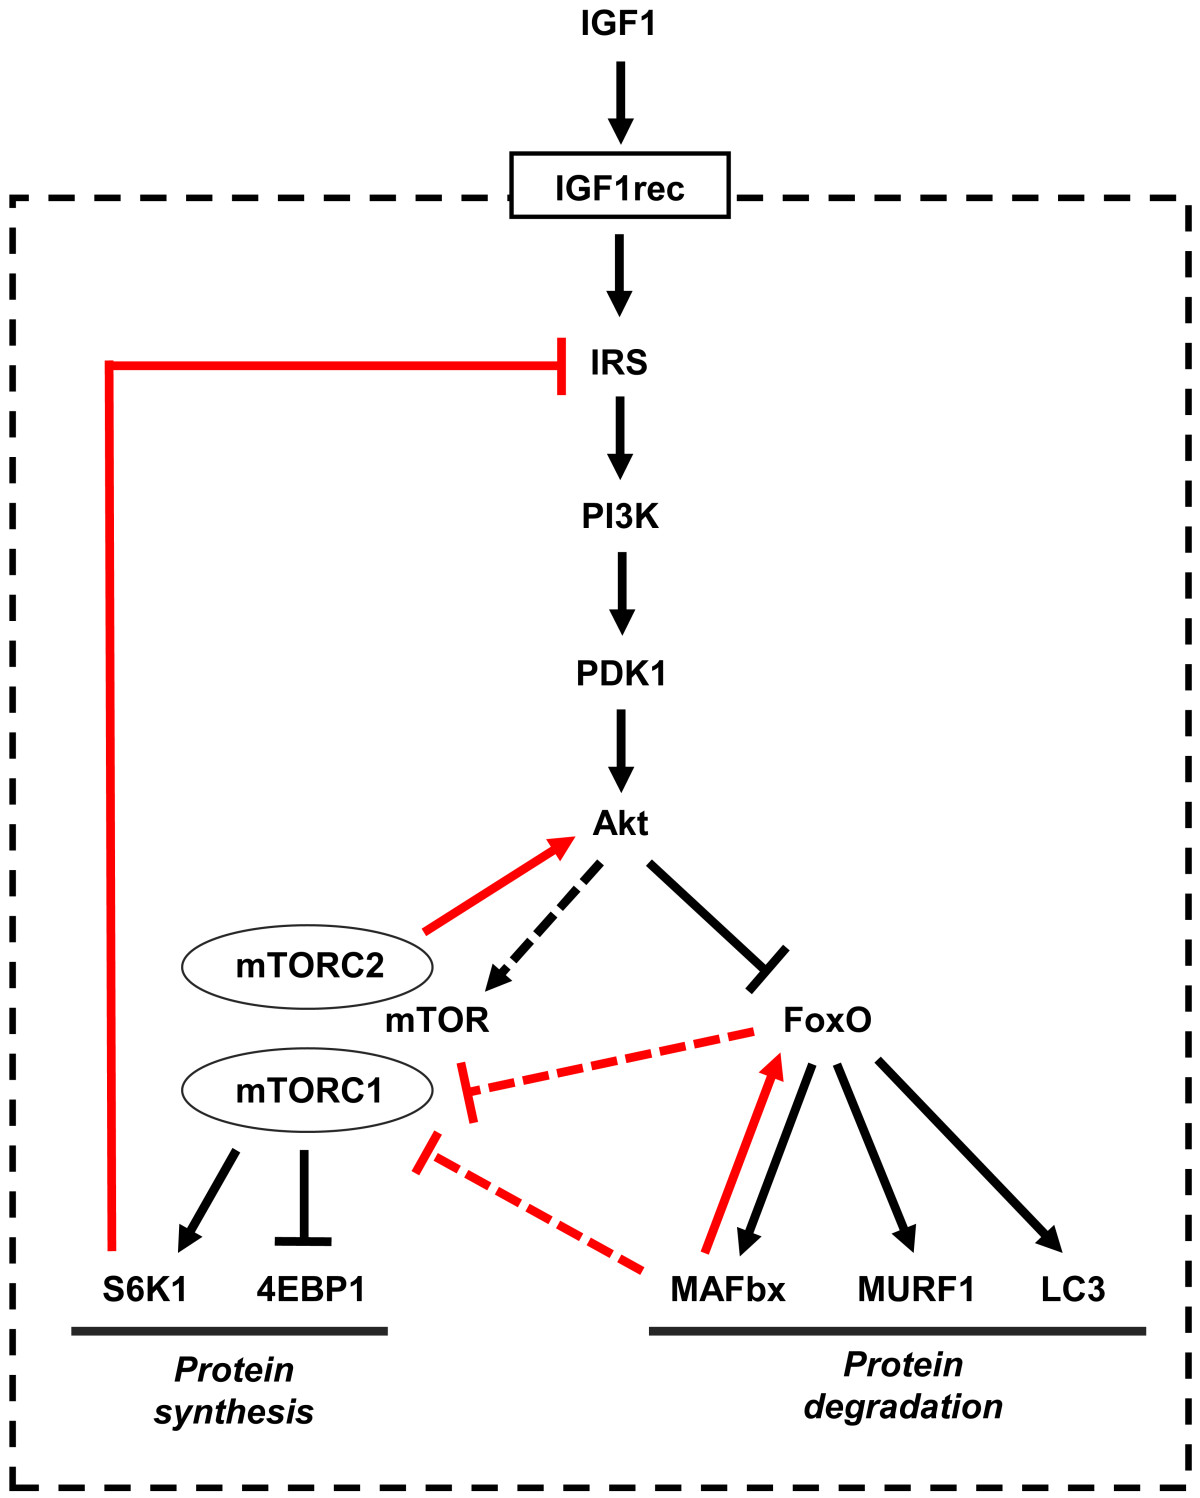 https://static-content.springer.com/image/art%3A10.1186%2F2044-5040-1-4/MediaObjects/13395_2010_Article_4_Fig1_HTML.jpg